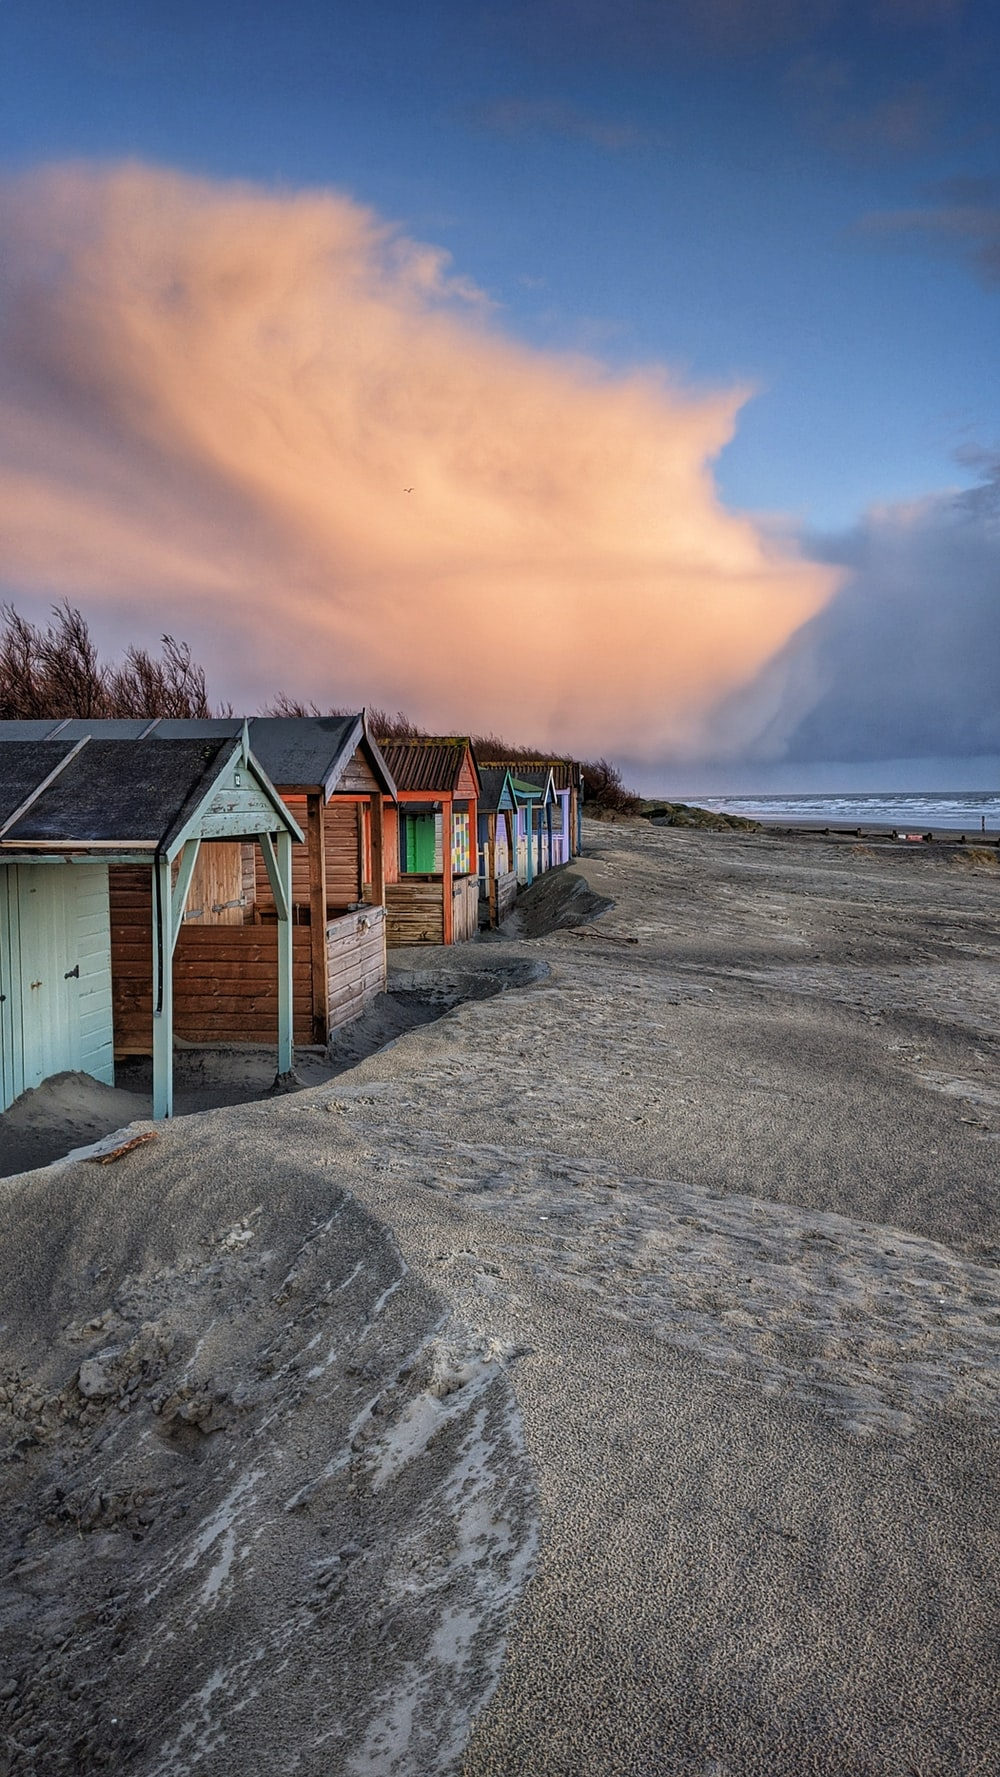 brown wooden houses on gray sand near body of water during sunset